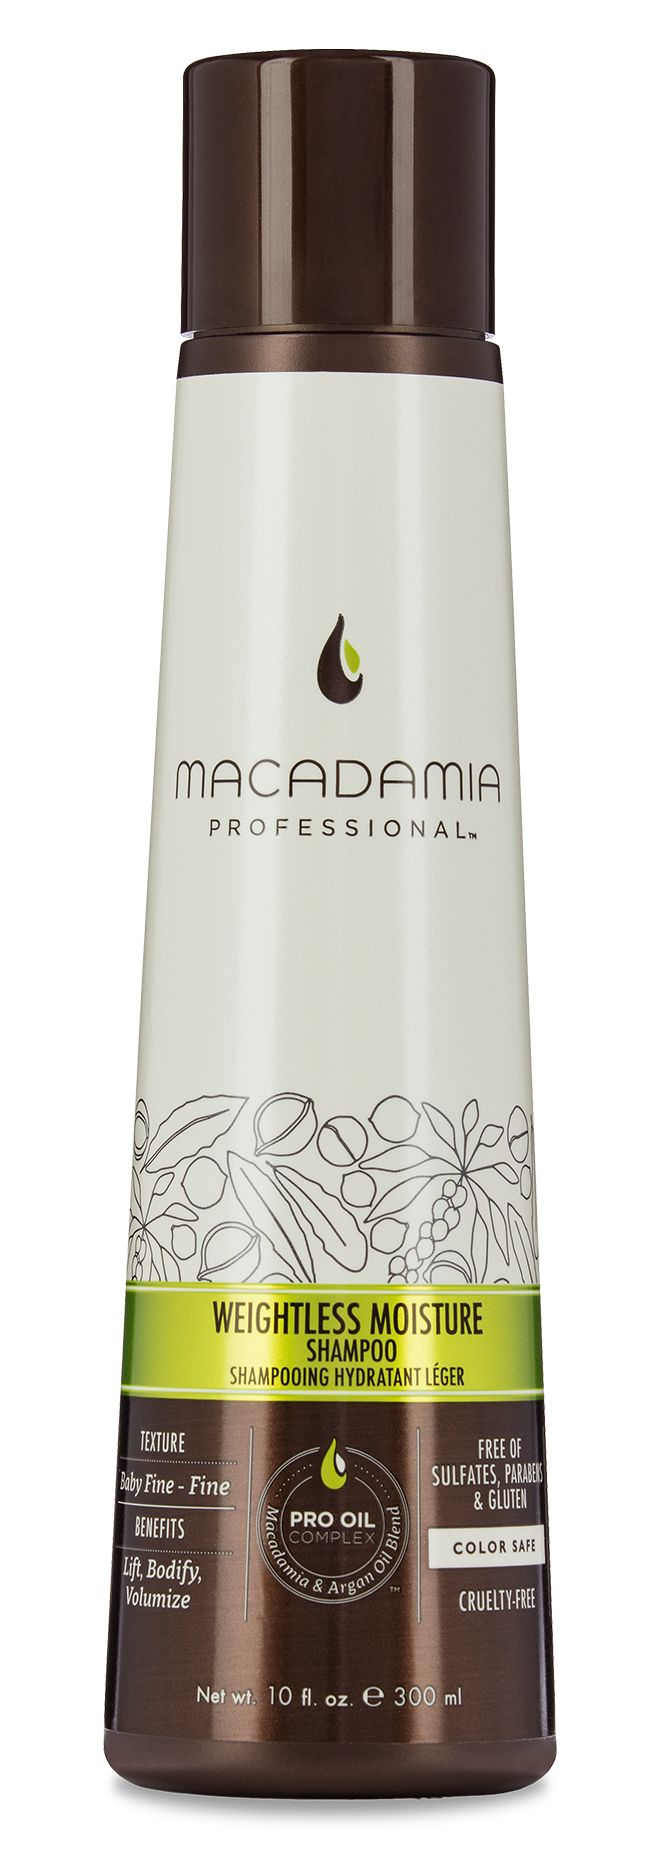 Macadamia Professional Weightless Moisture Shampoo is a lightweight, moisturizing shampoo that provides lift, body, and volume to baby fine to fine hair textures.